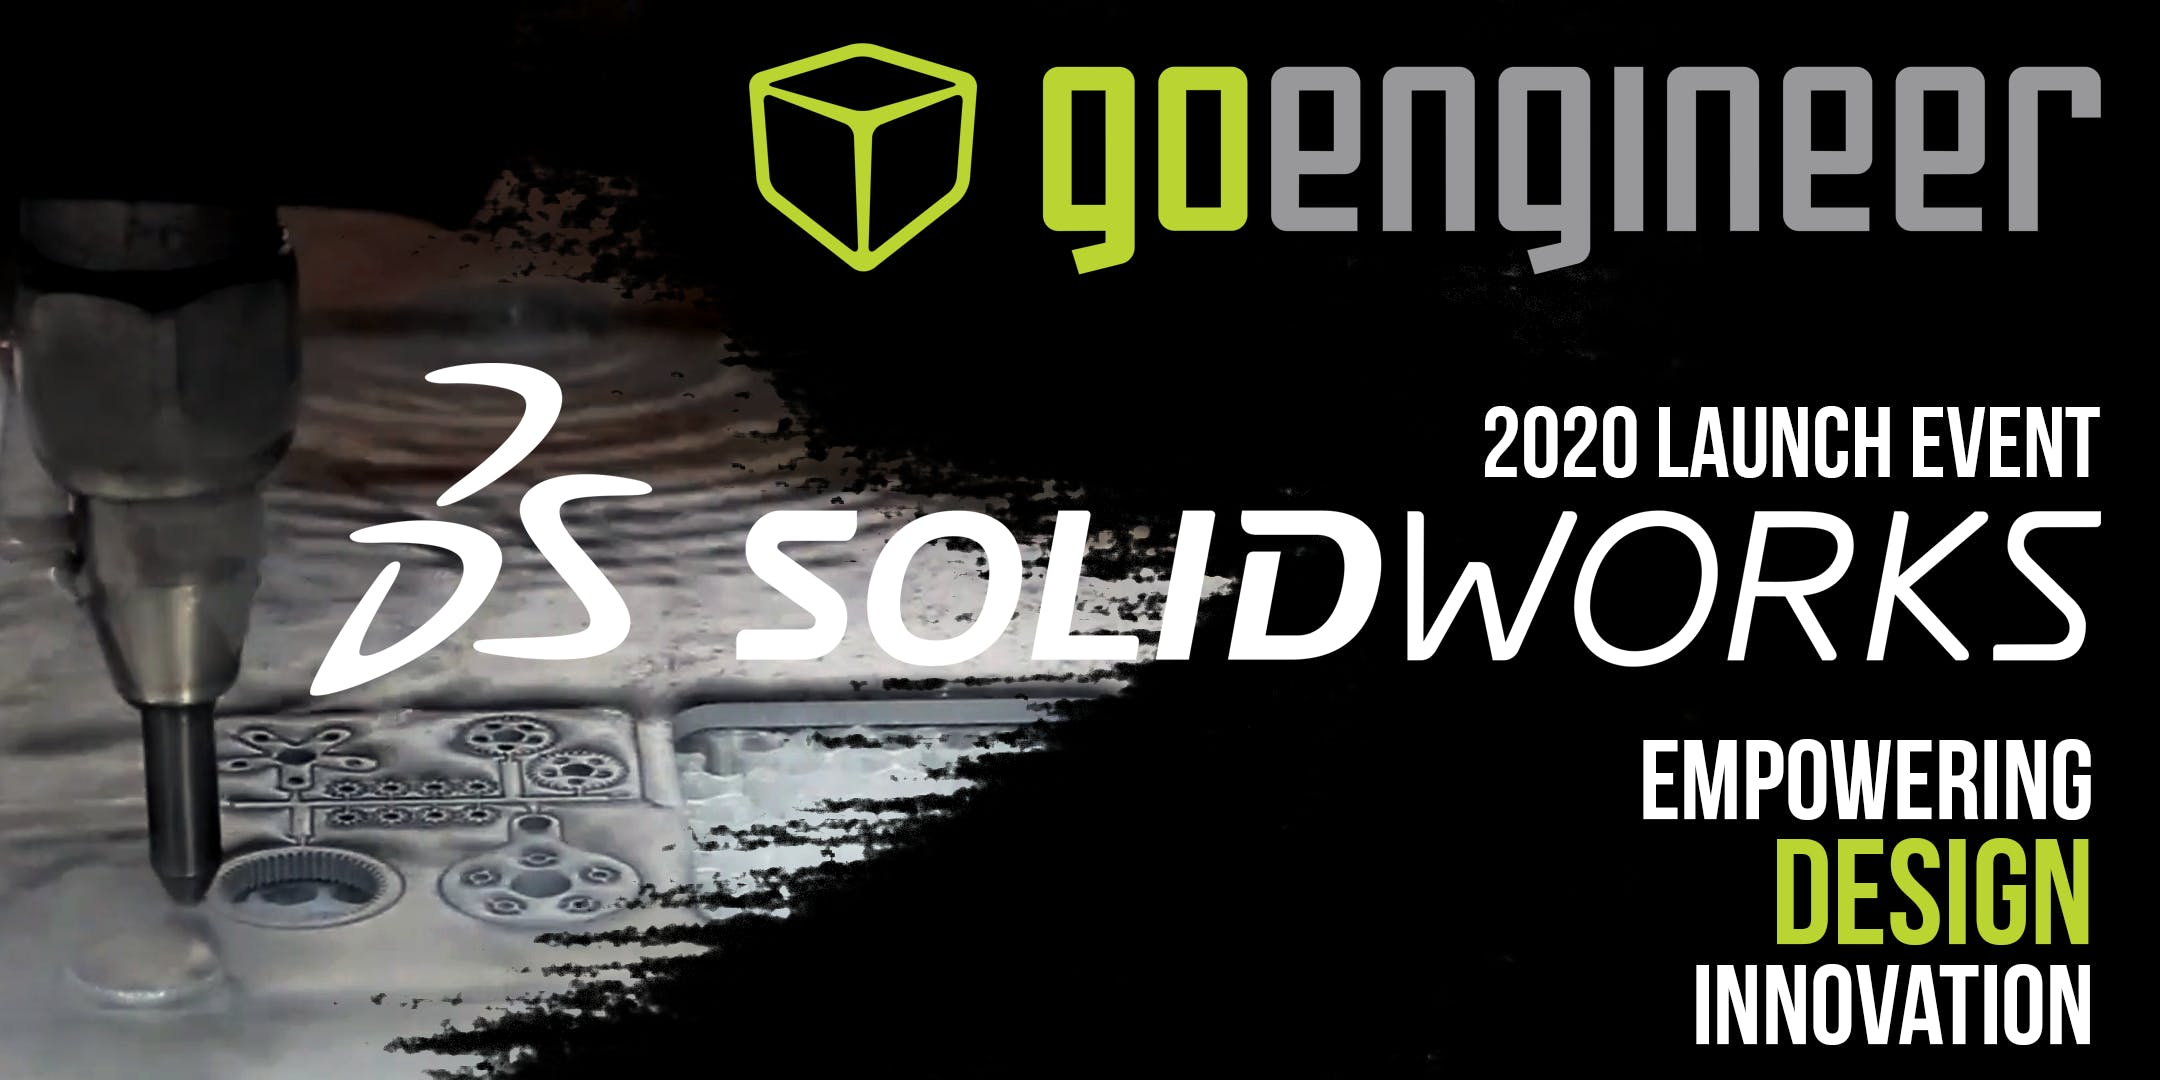 Scottsdale: SOLIDWORKS 2020 Launch Event Happy Hour   Empowering Design Innovation